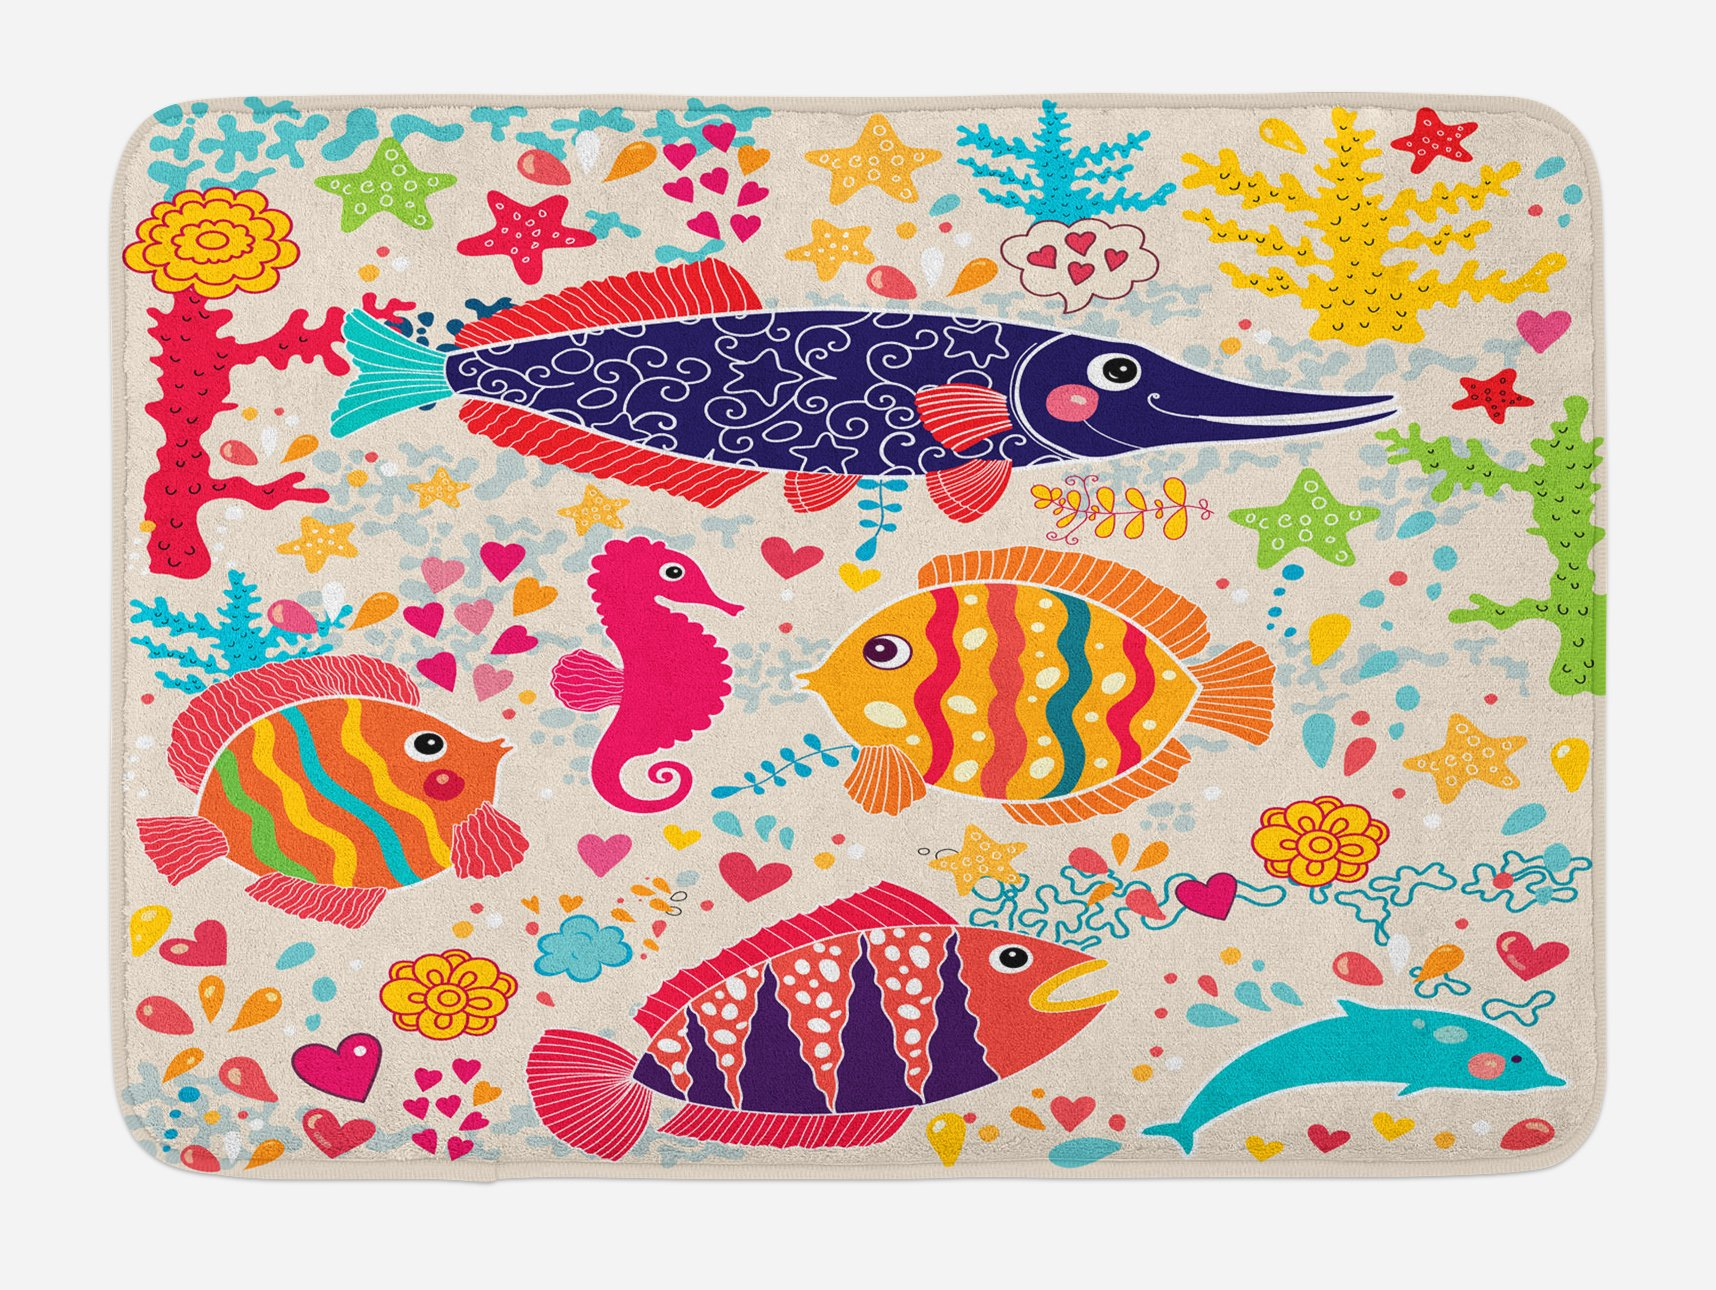 Ambesonne Sea Animals Bath Mat, Cartoon Art with Fish Seahorse Starfish Dolphin Coral Underwater Life Kids, Plush Bathroom Decor Mat with Non Slip Backing, 29.5 W X 17.5 W Inches, Multicolor